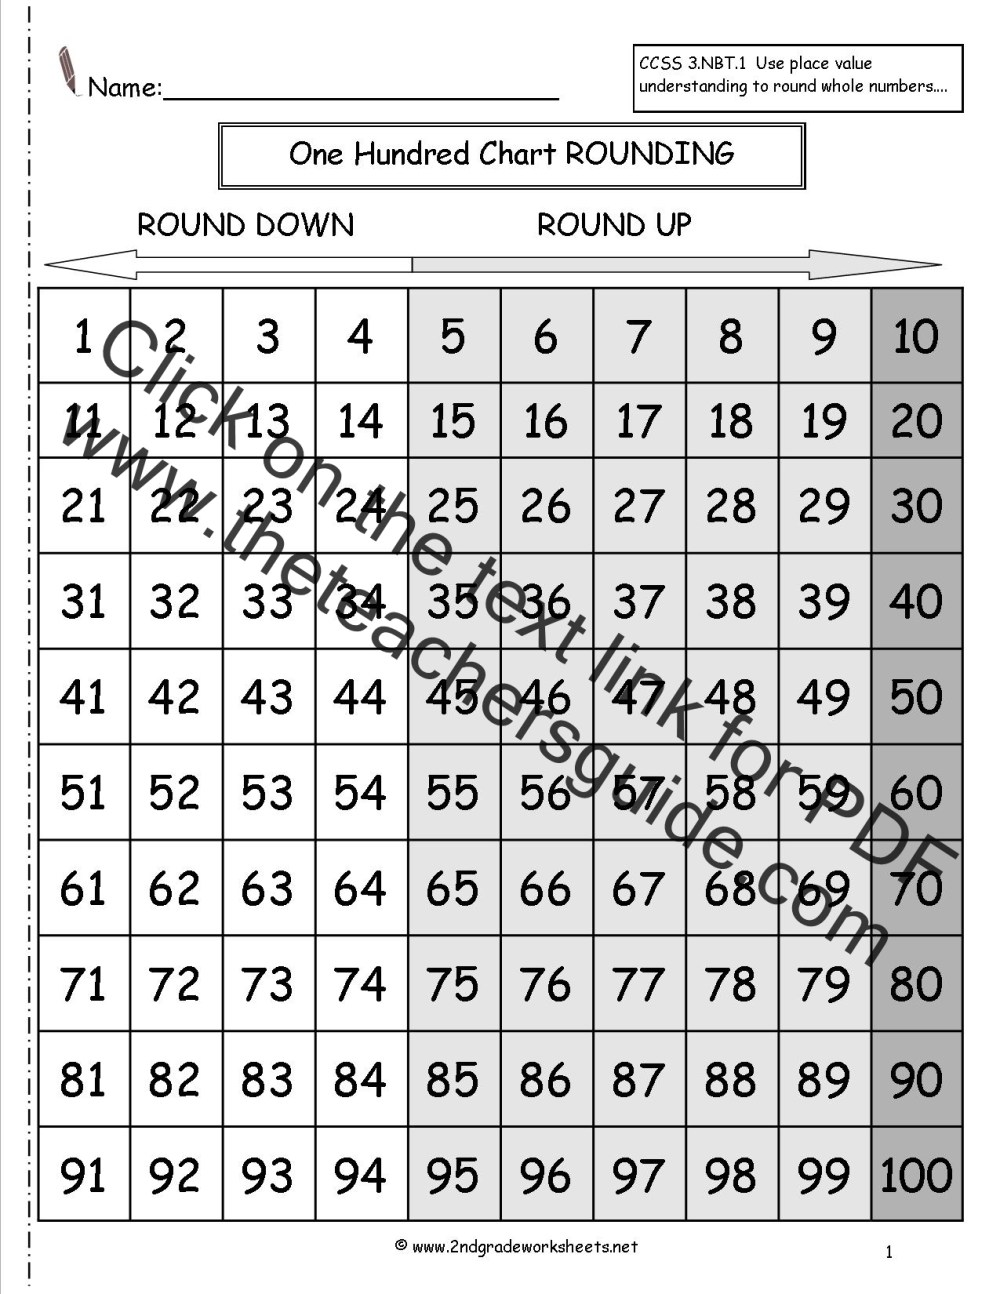 medium resolution of Free Math Worksheets And Printouts 100 Commonly Misspelled Words Worksheet  - LowGif